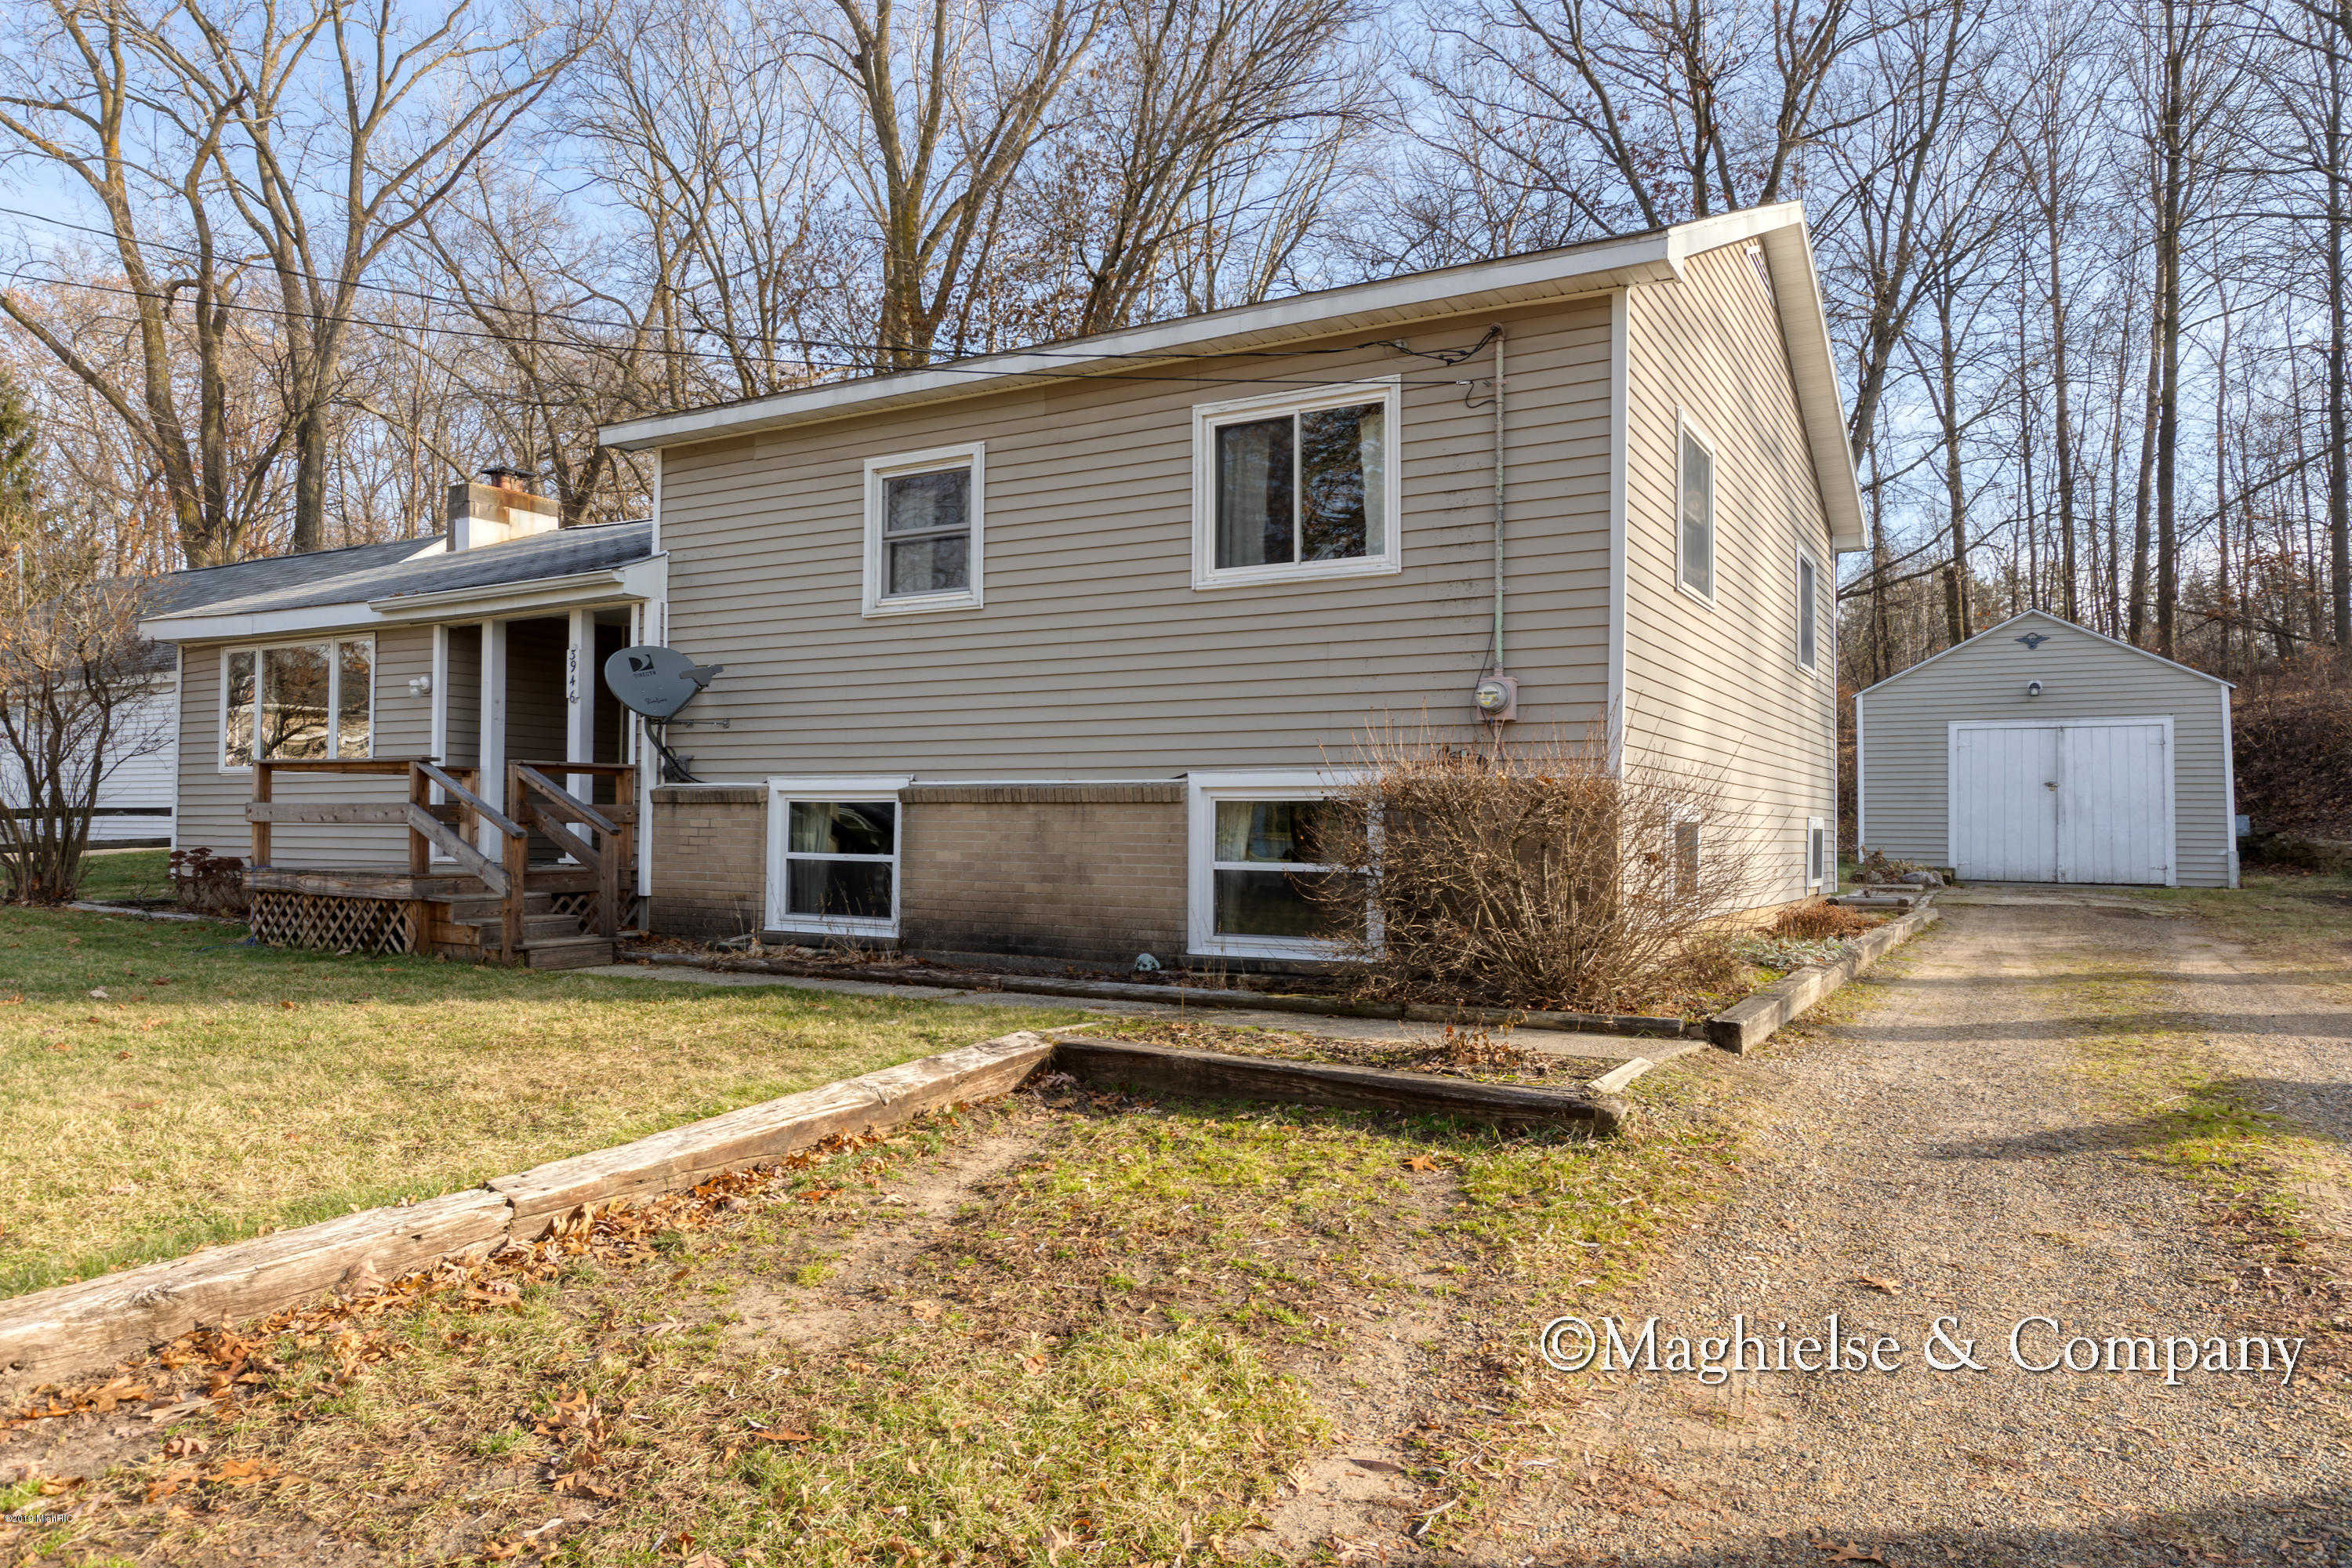 3946 Causeway Drive, Lowell, MI 49331 has an Open House on  Saturday, December 28, 2019 1:00 PM to 2:30 PM